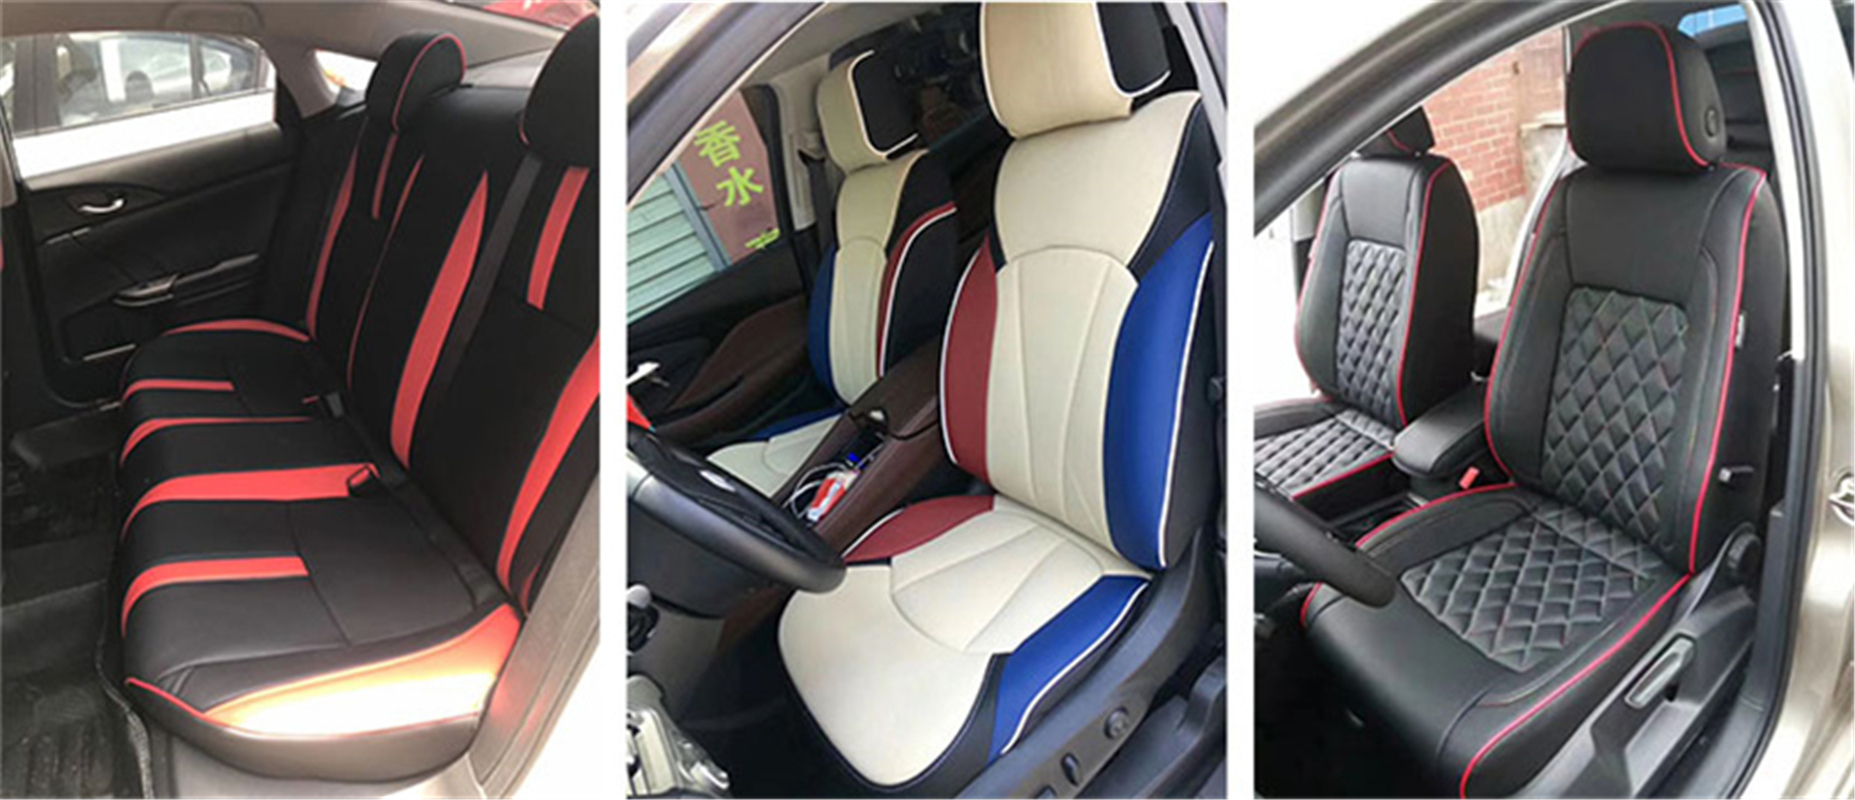 Professional Seat cover for car